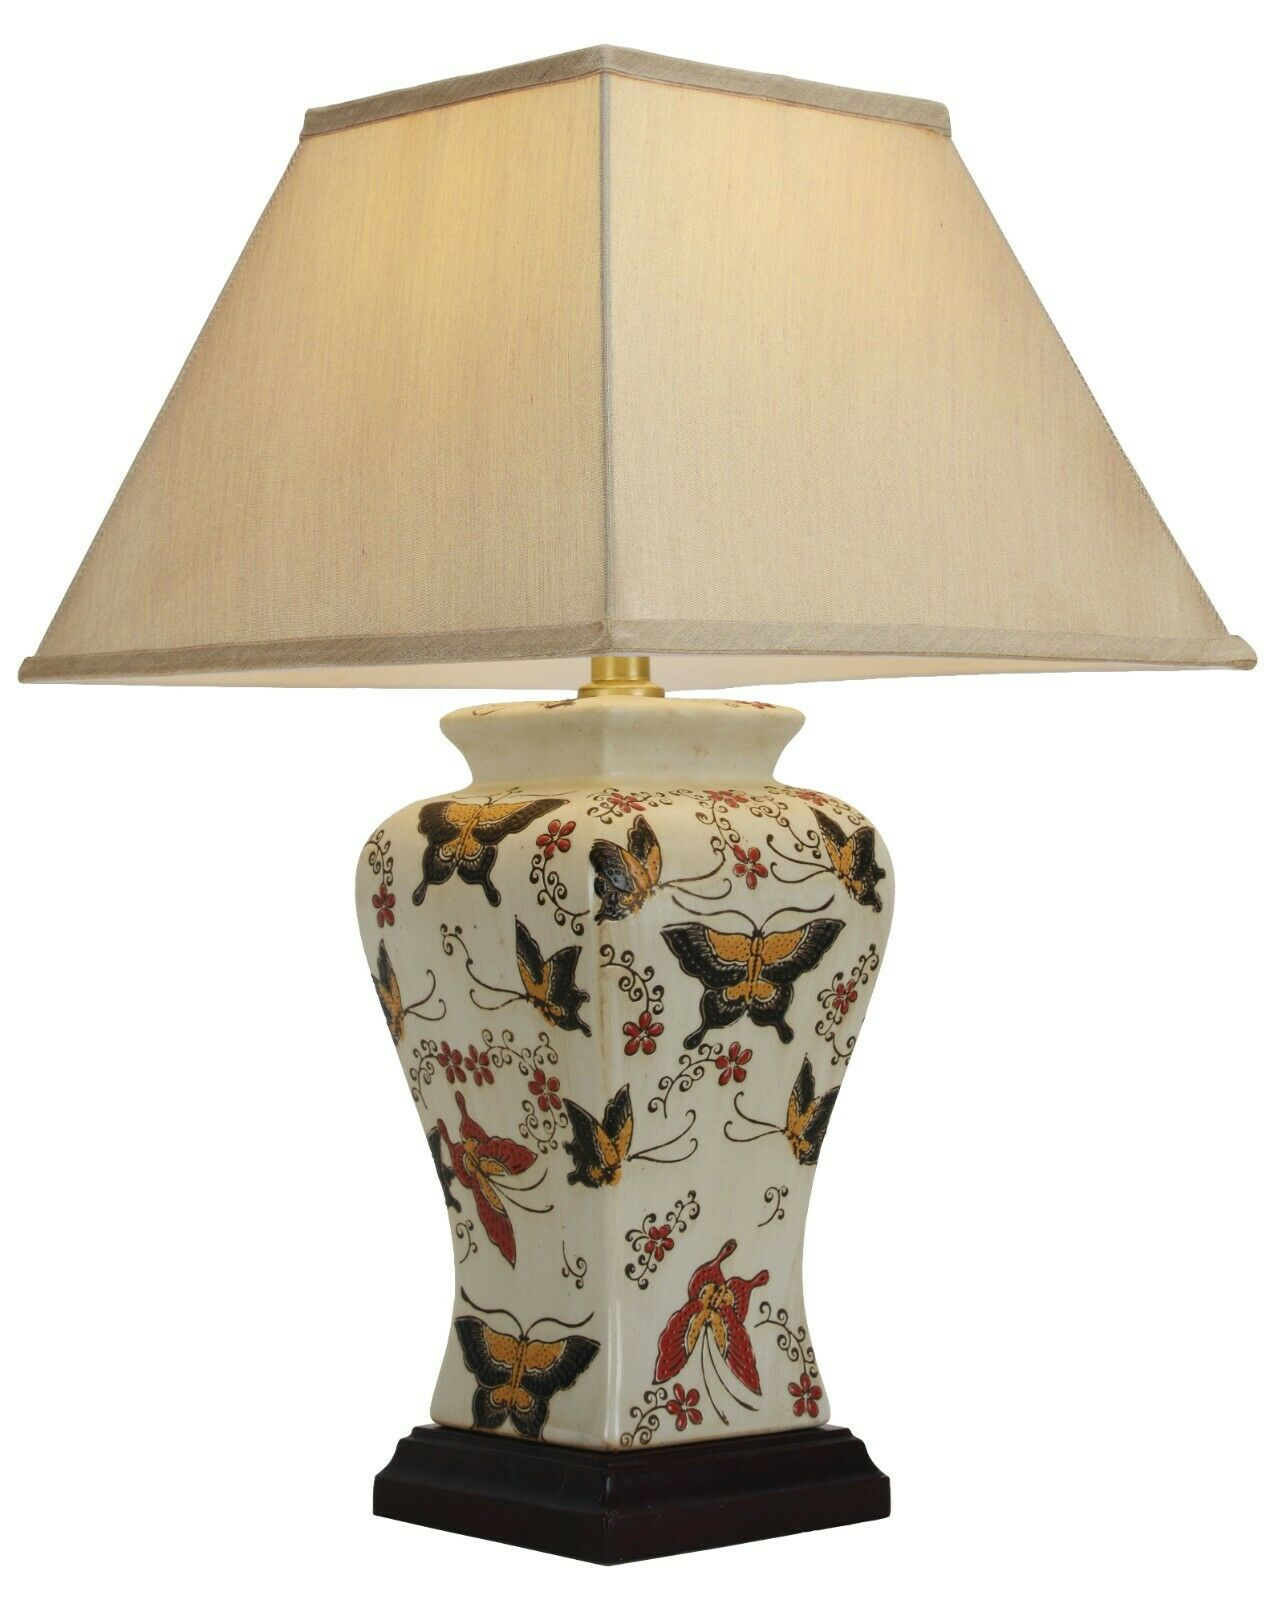 NOW £30 OFF - Genuine Chinese Ceramic Porcelain Butterfly Table Lamp (M9955)